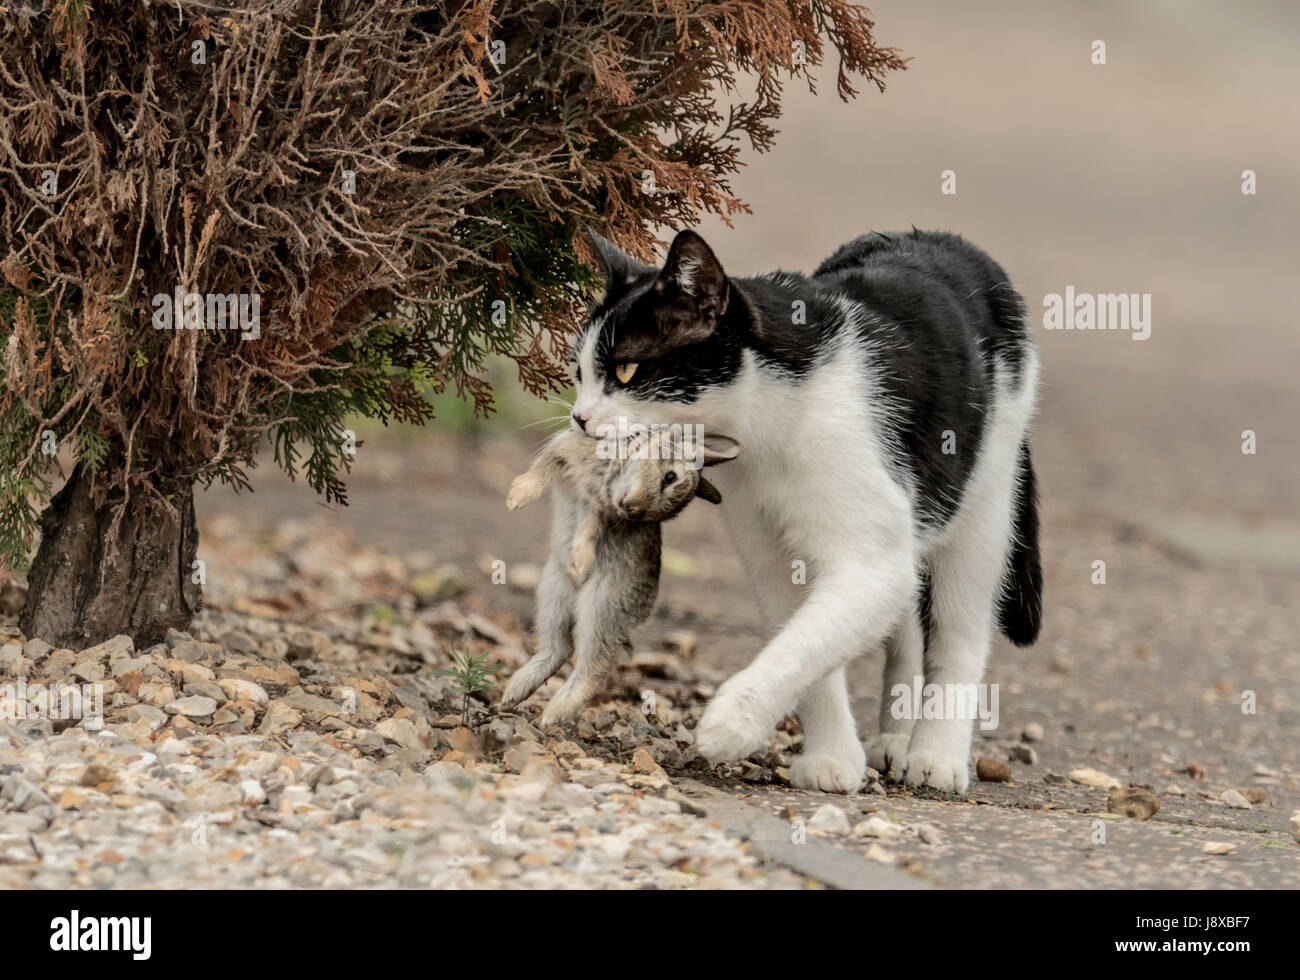 Domesticated Cat carrying a dead young Rabbit. Stock Photo